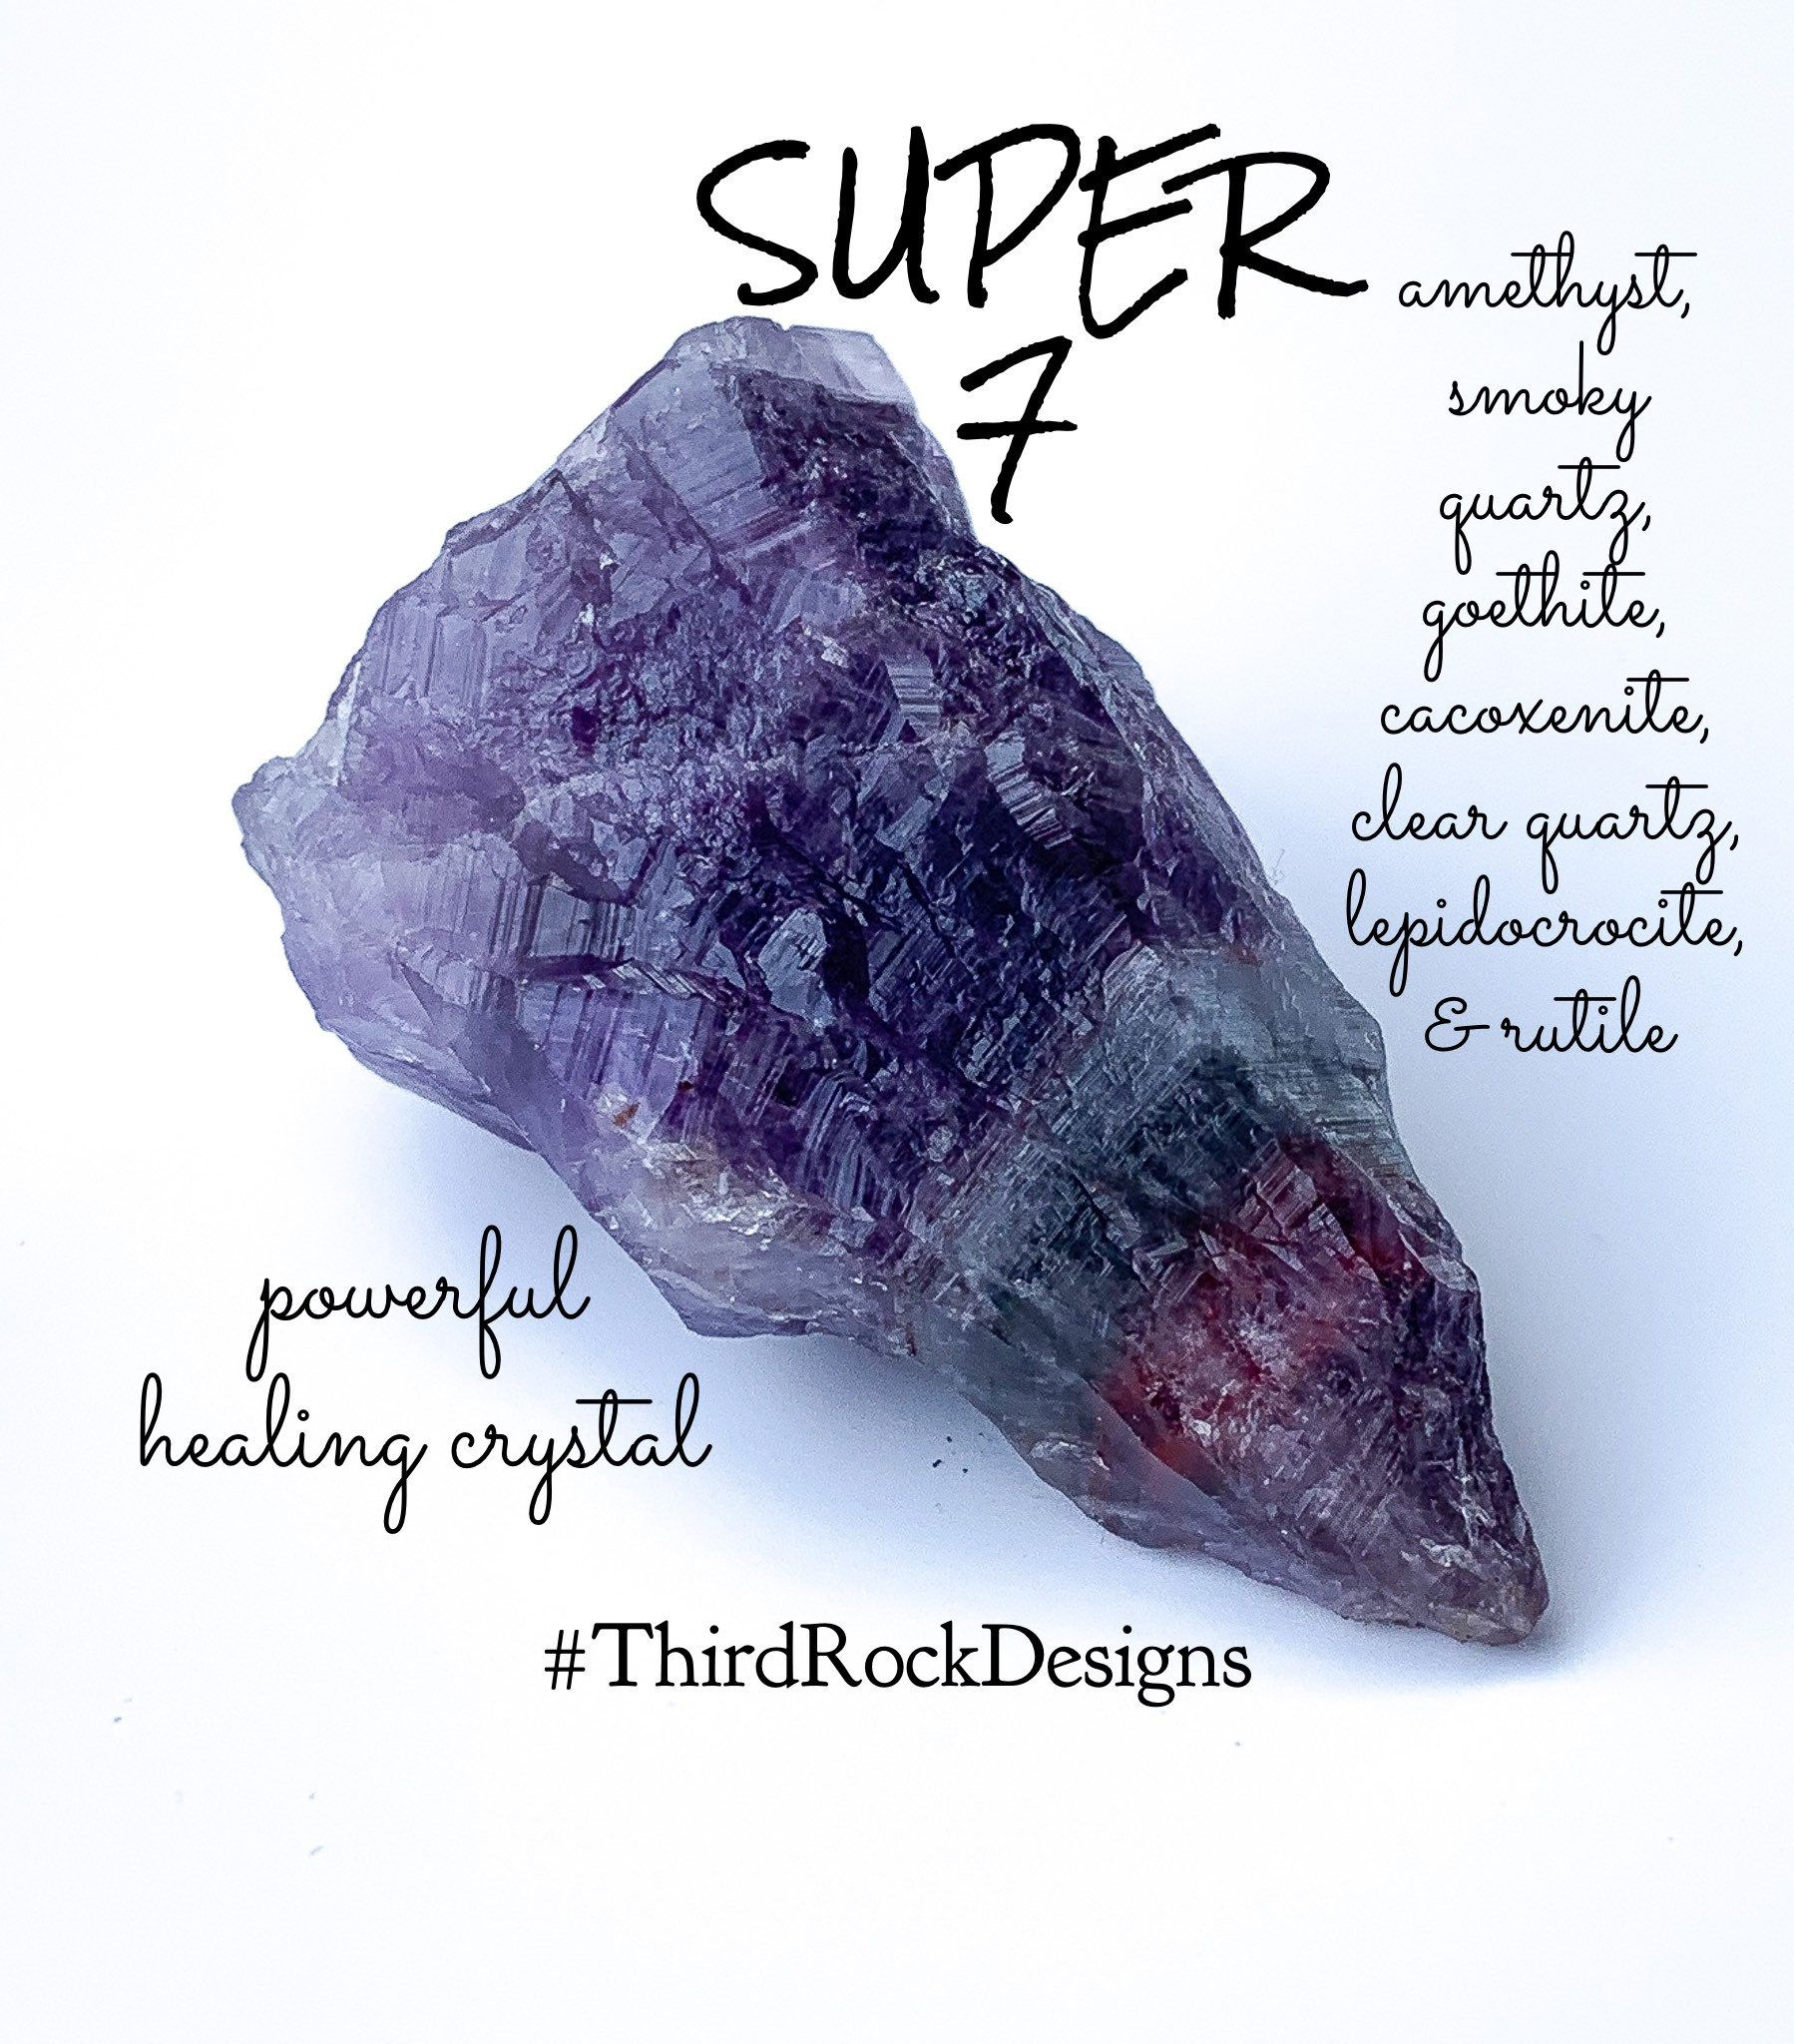 This gorgeous high vibration healing Super 7 crystals is available ...